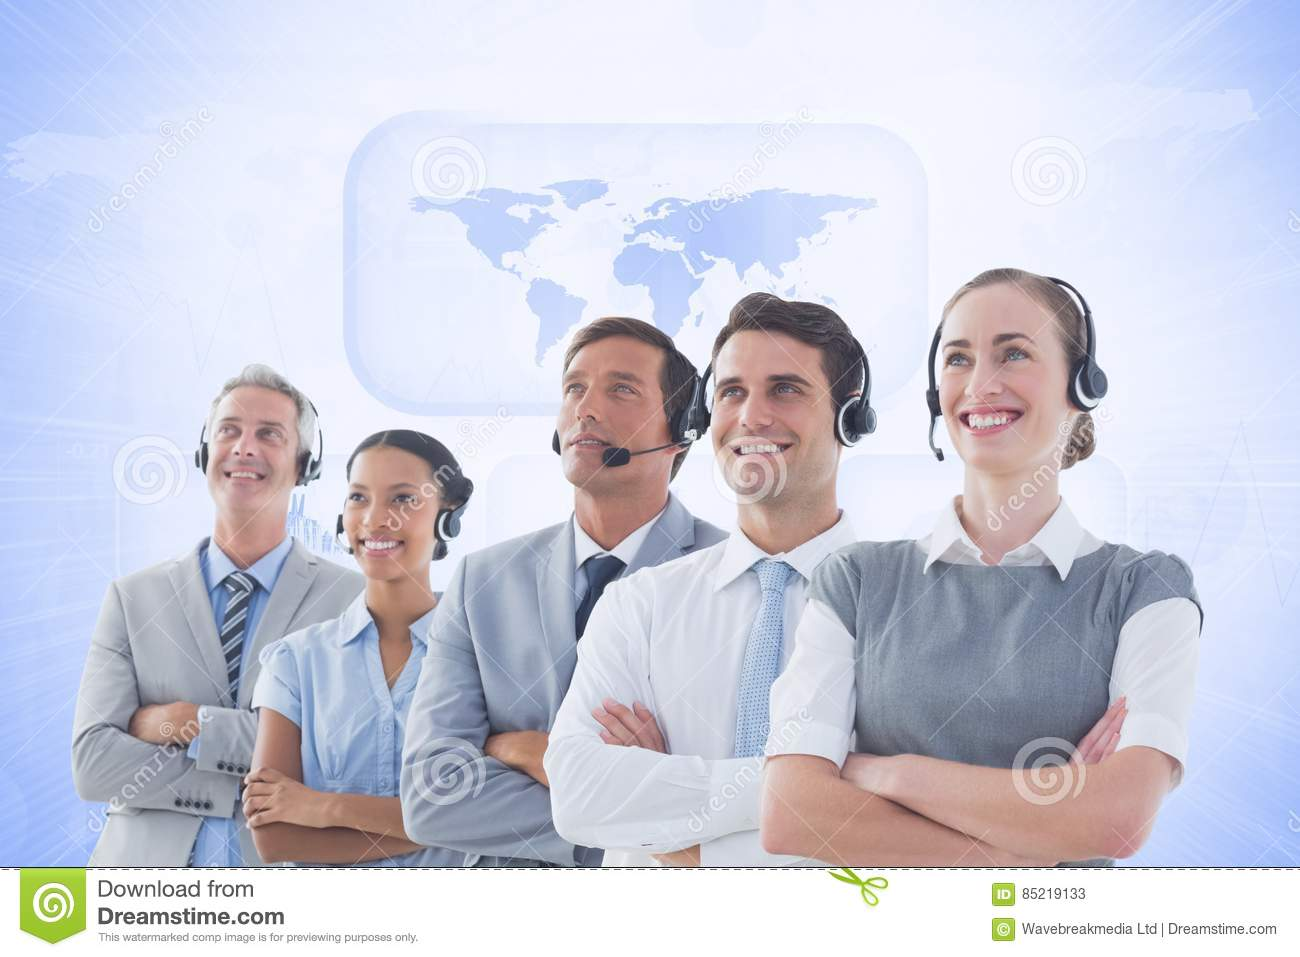 Customer service executives standing with their arms crossed